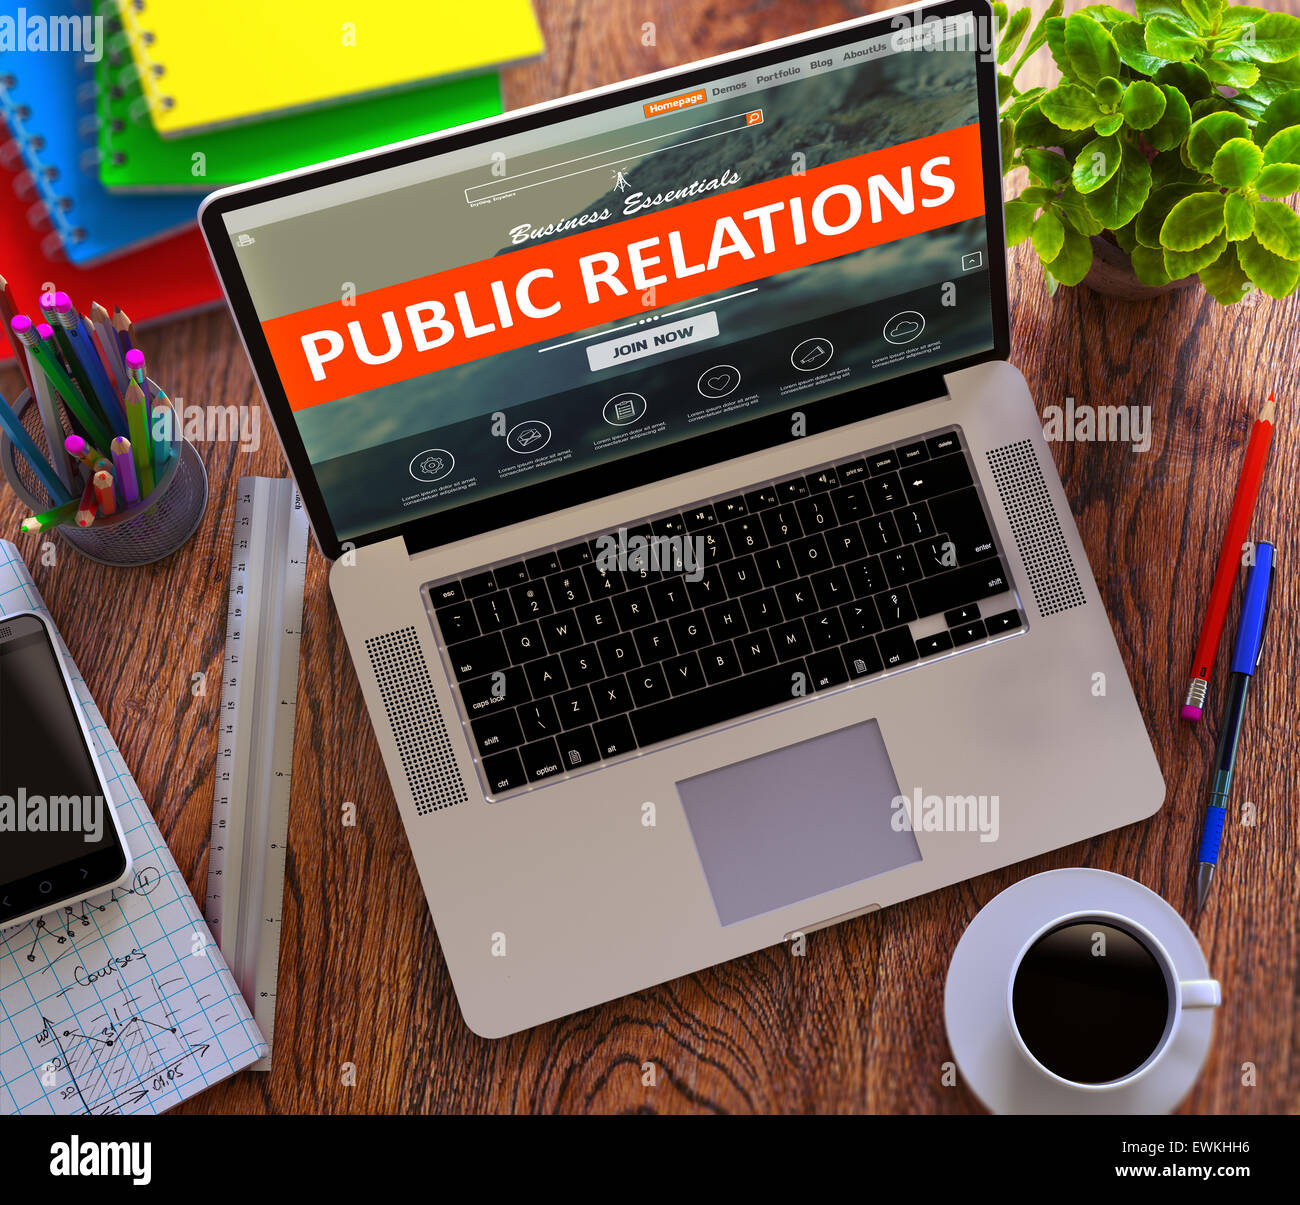 Public Relations. Online Working Concept. - Stock Image